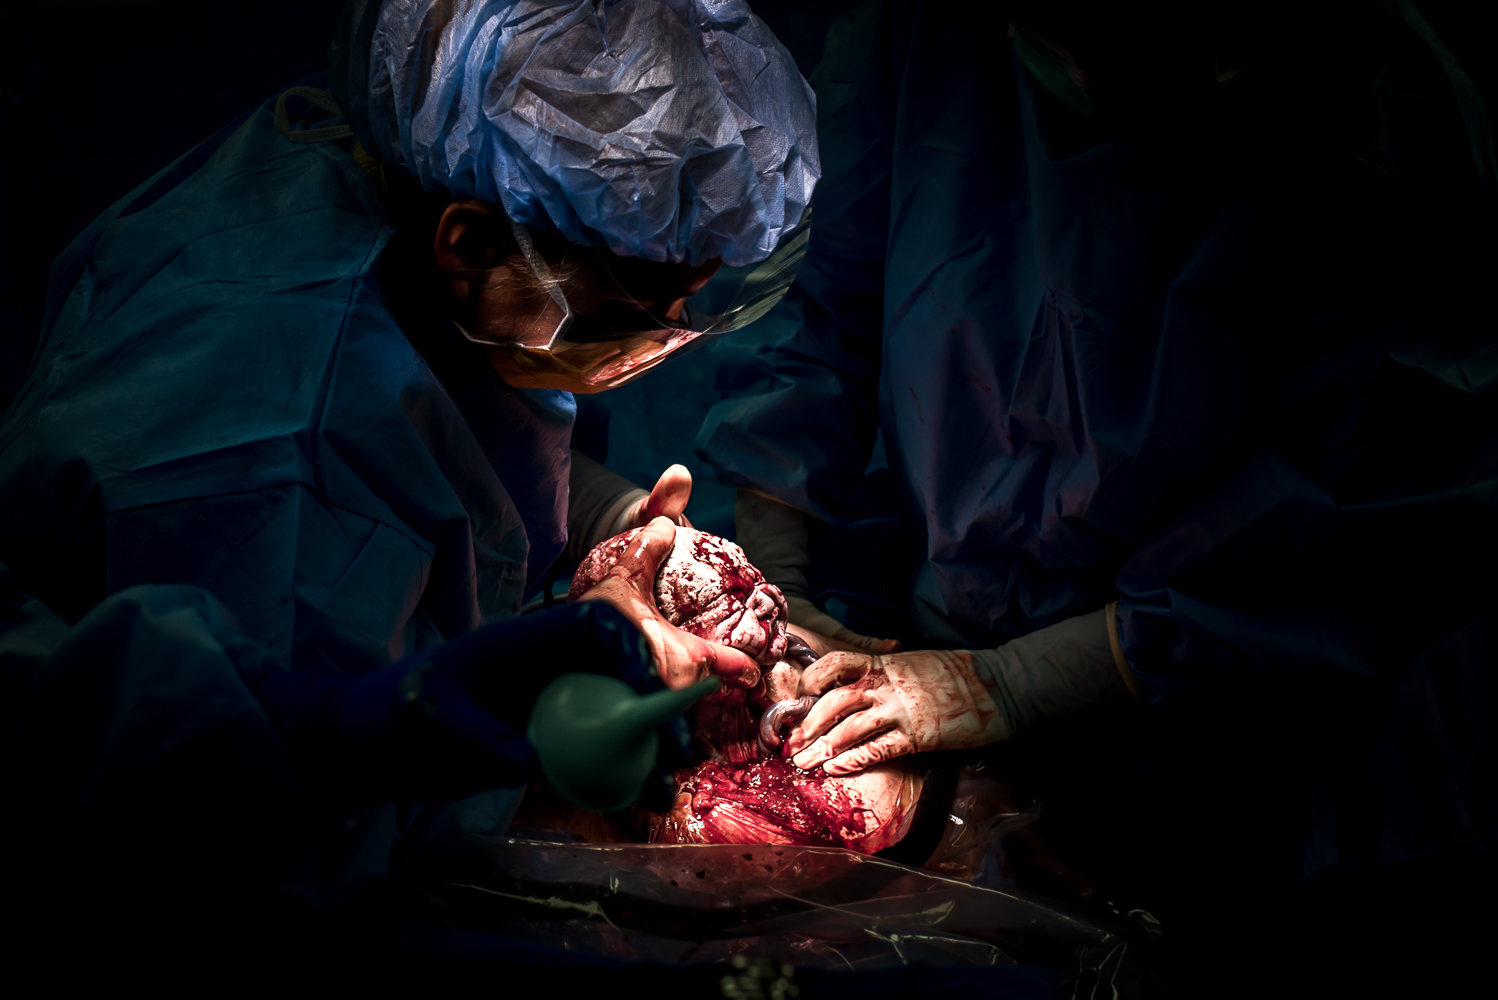 An amazing belly birth (c-section) I had the privilege of photographing. (Skyridge Medical Center)